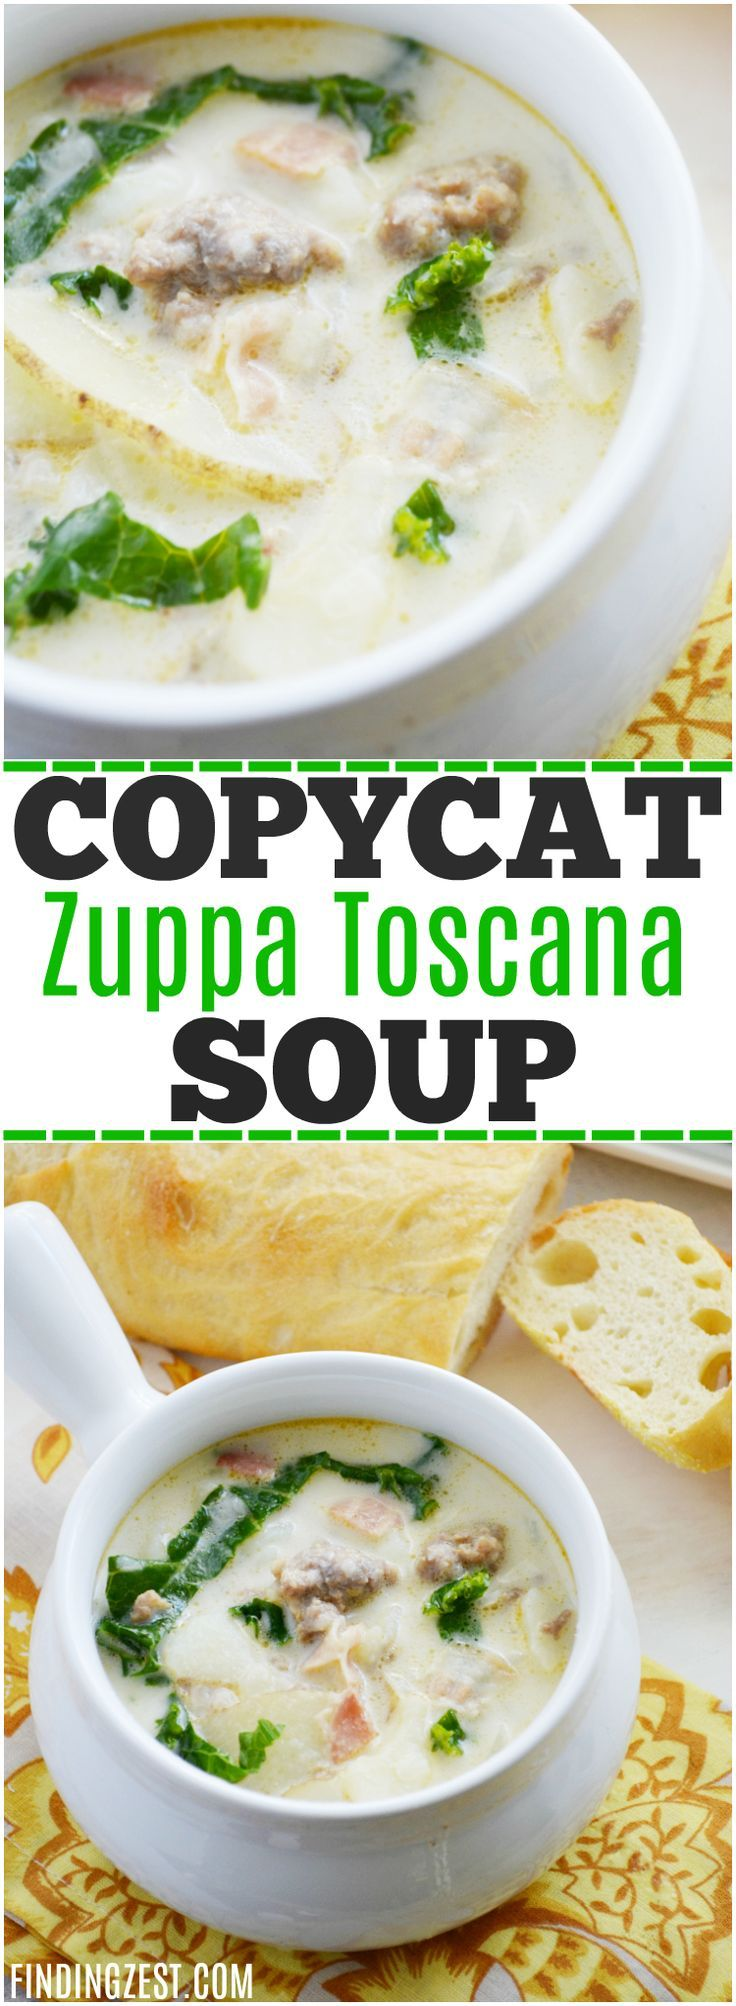 Get this easy Copycat Zuppa Toscana Soup recipe from Olive Garden™️ so you can enjoy the wonderful flavors of this sausage and potato soup at home! You won't believe how simple it is to make a zuppa toscana copycat yourself. This soup makes a great weeknight dinner your whole family will love! #copycatrecipe #soup #souprecipes #dinnerrecipes #dinner